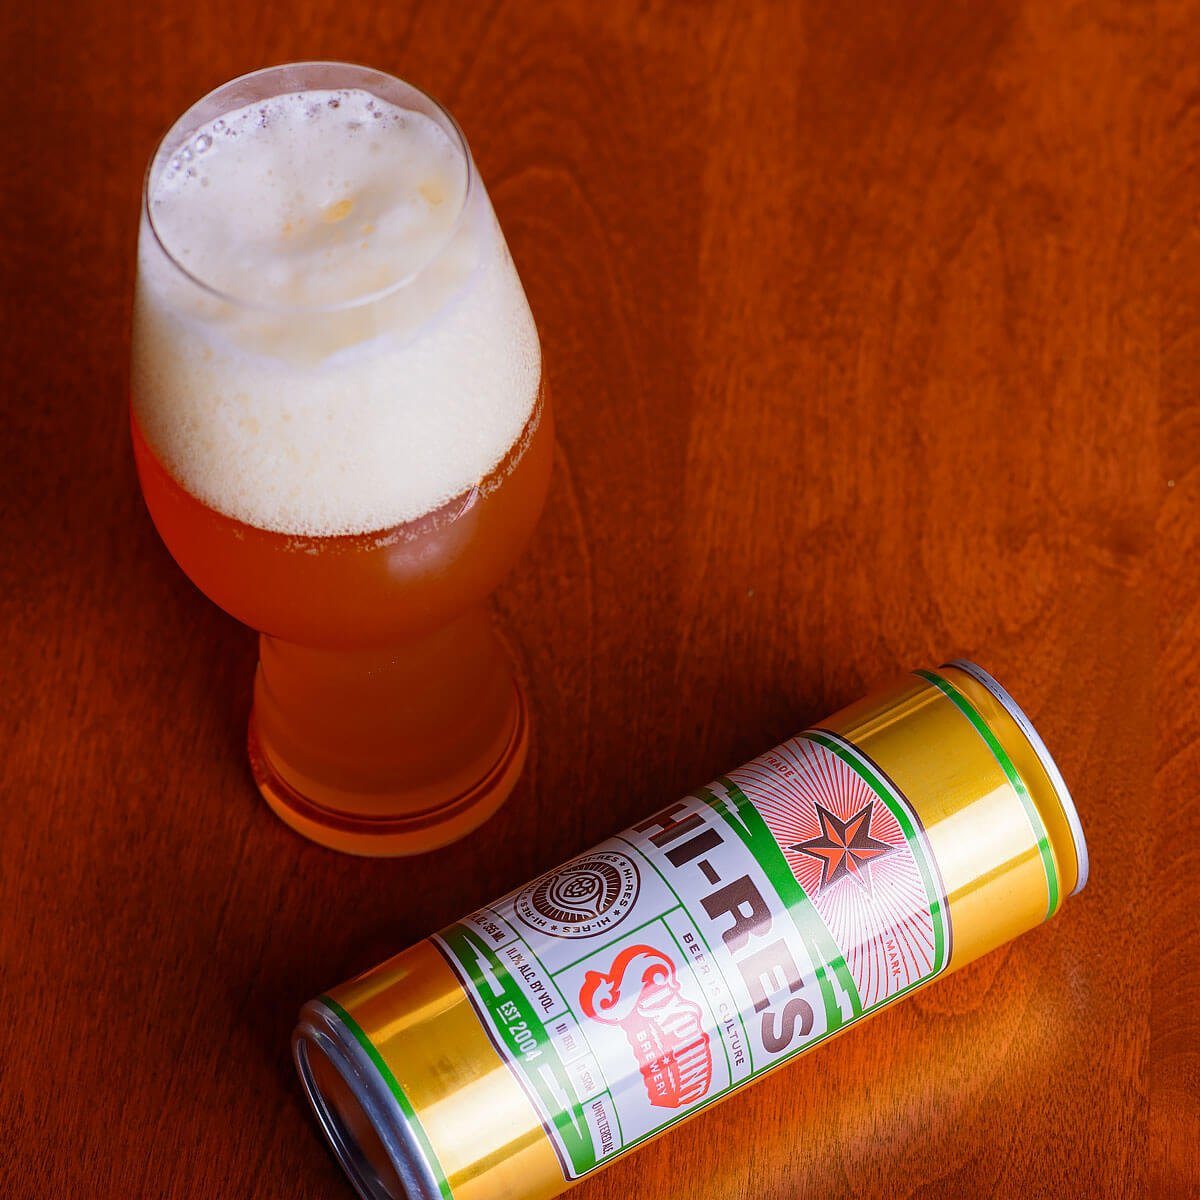 Hi-Res, an American Double IPA by Sixpoint Brewery